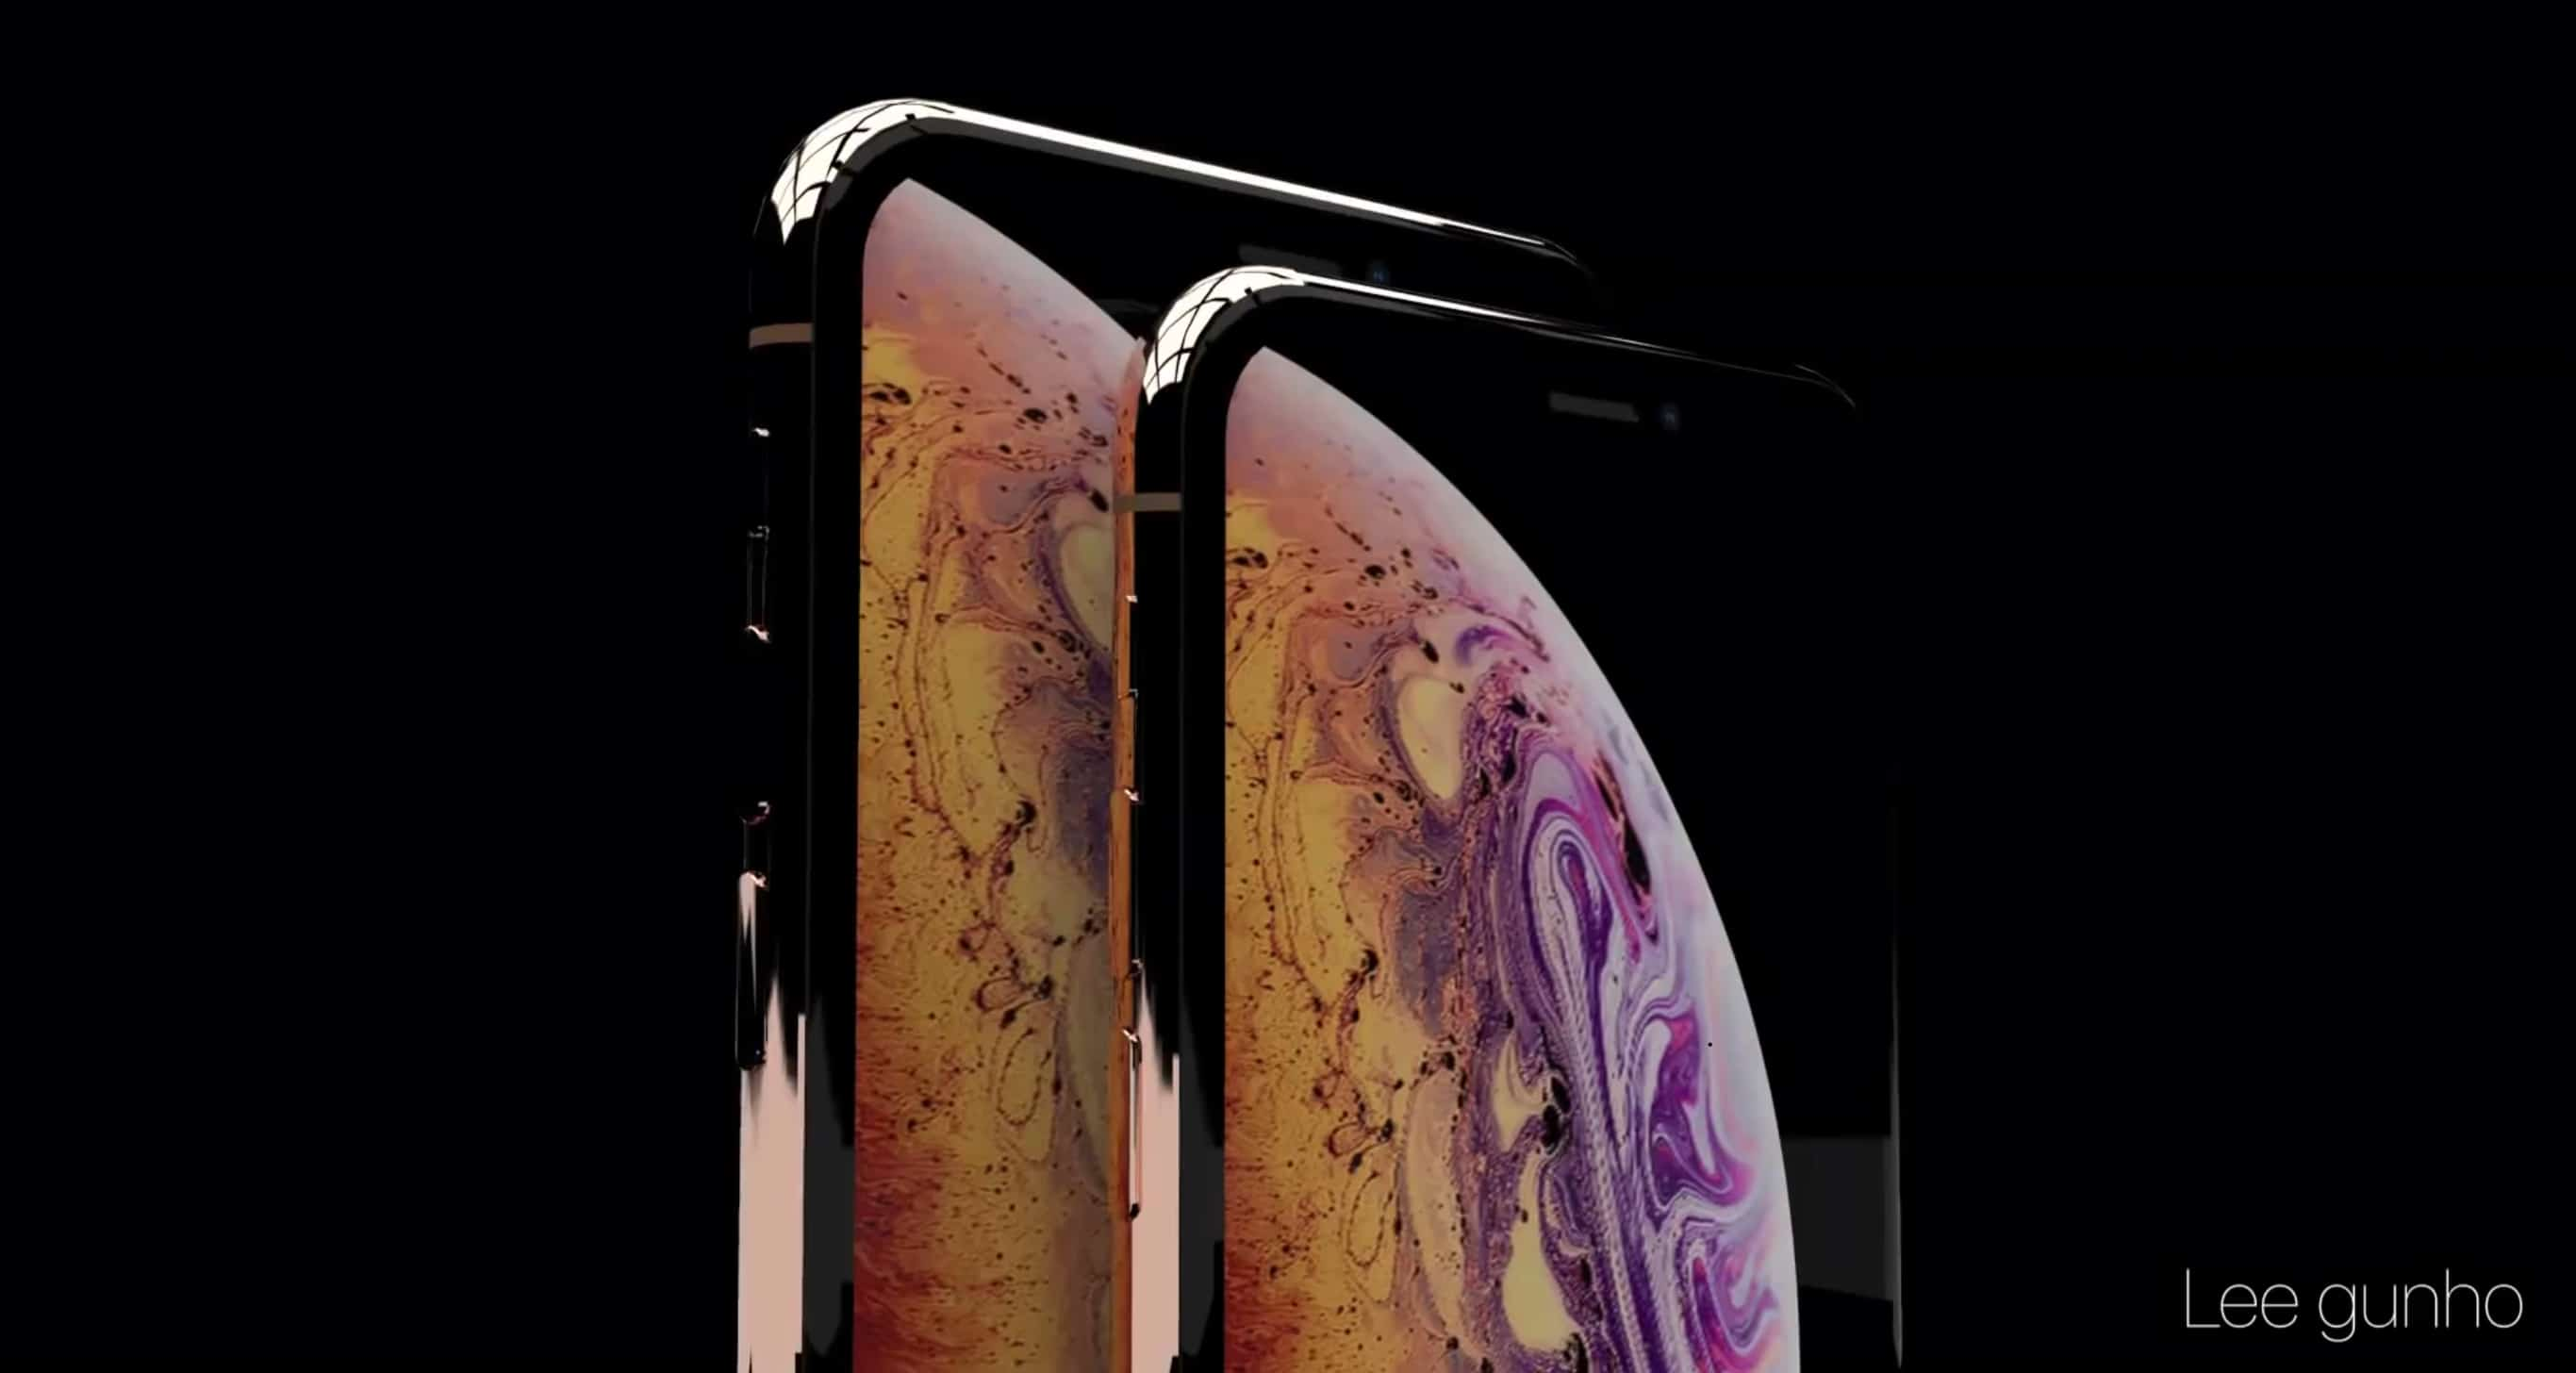 This could be the iPhone XS Plus and iPhone XS, Apple's 2018 iPhone models.